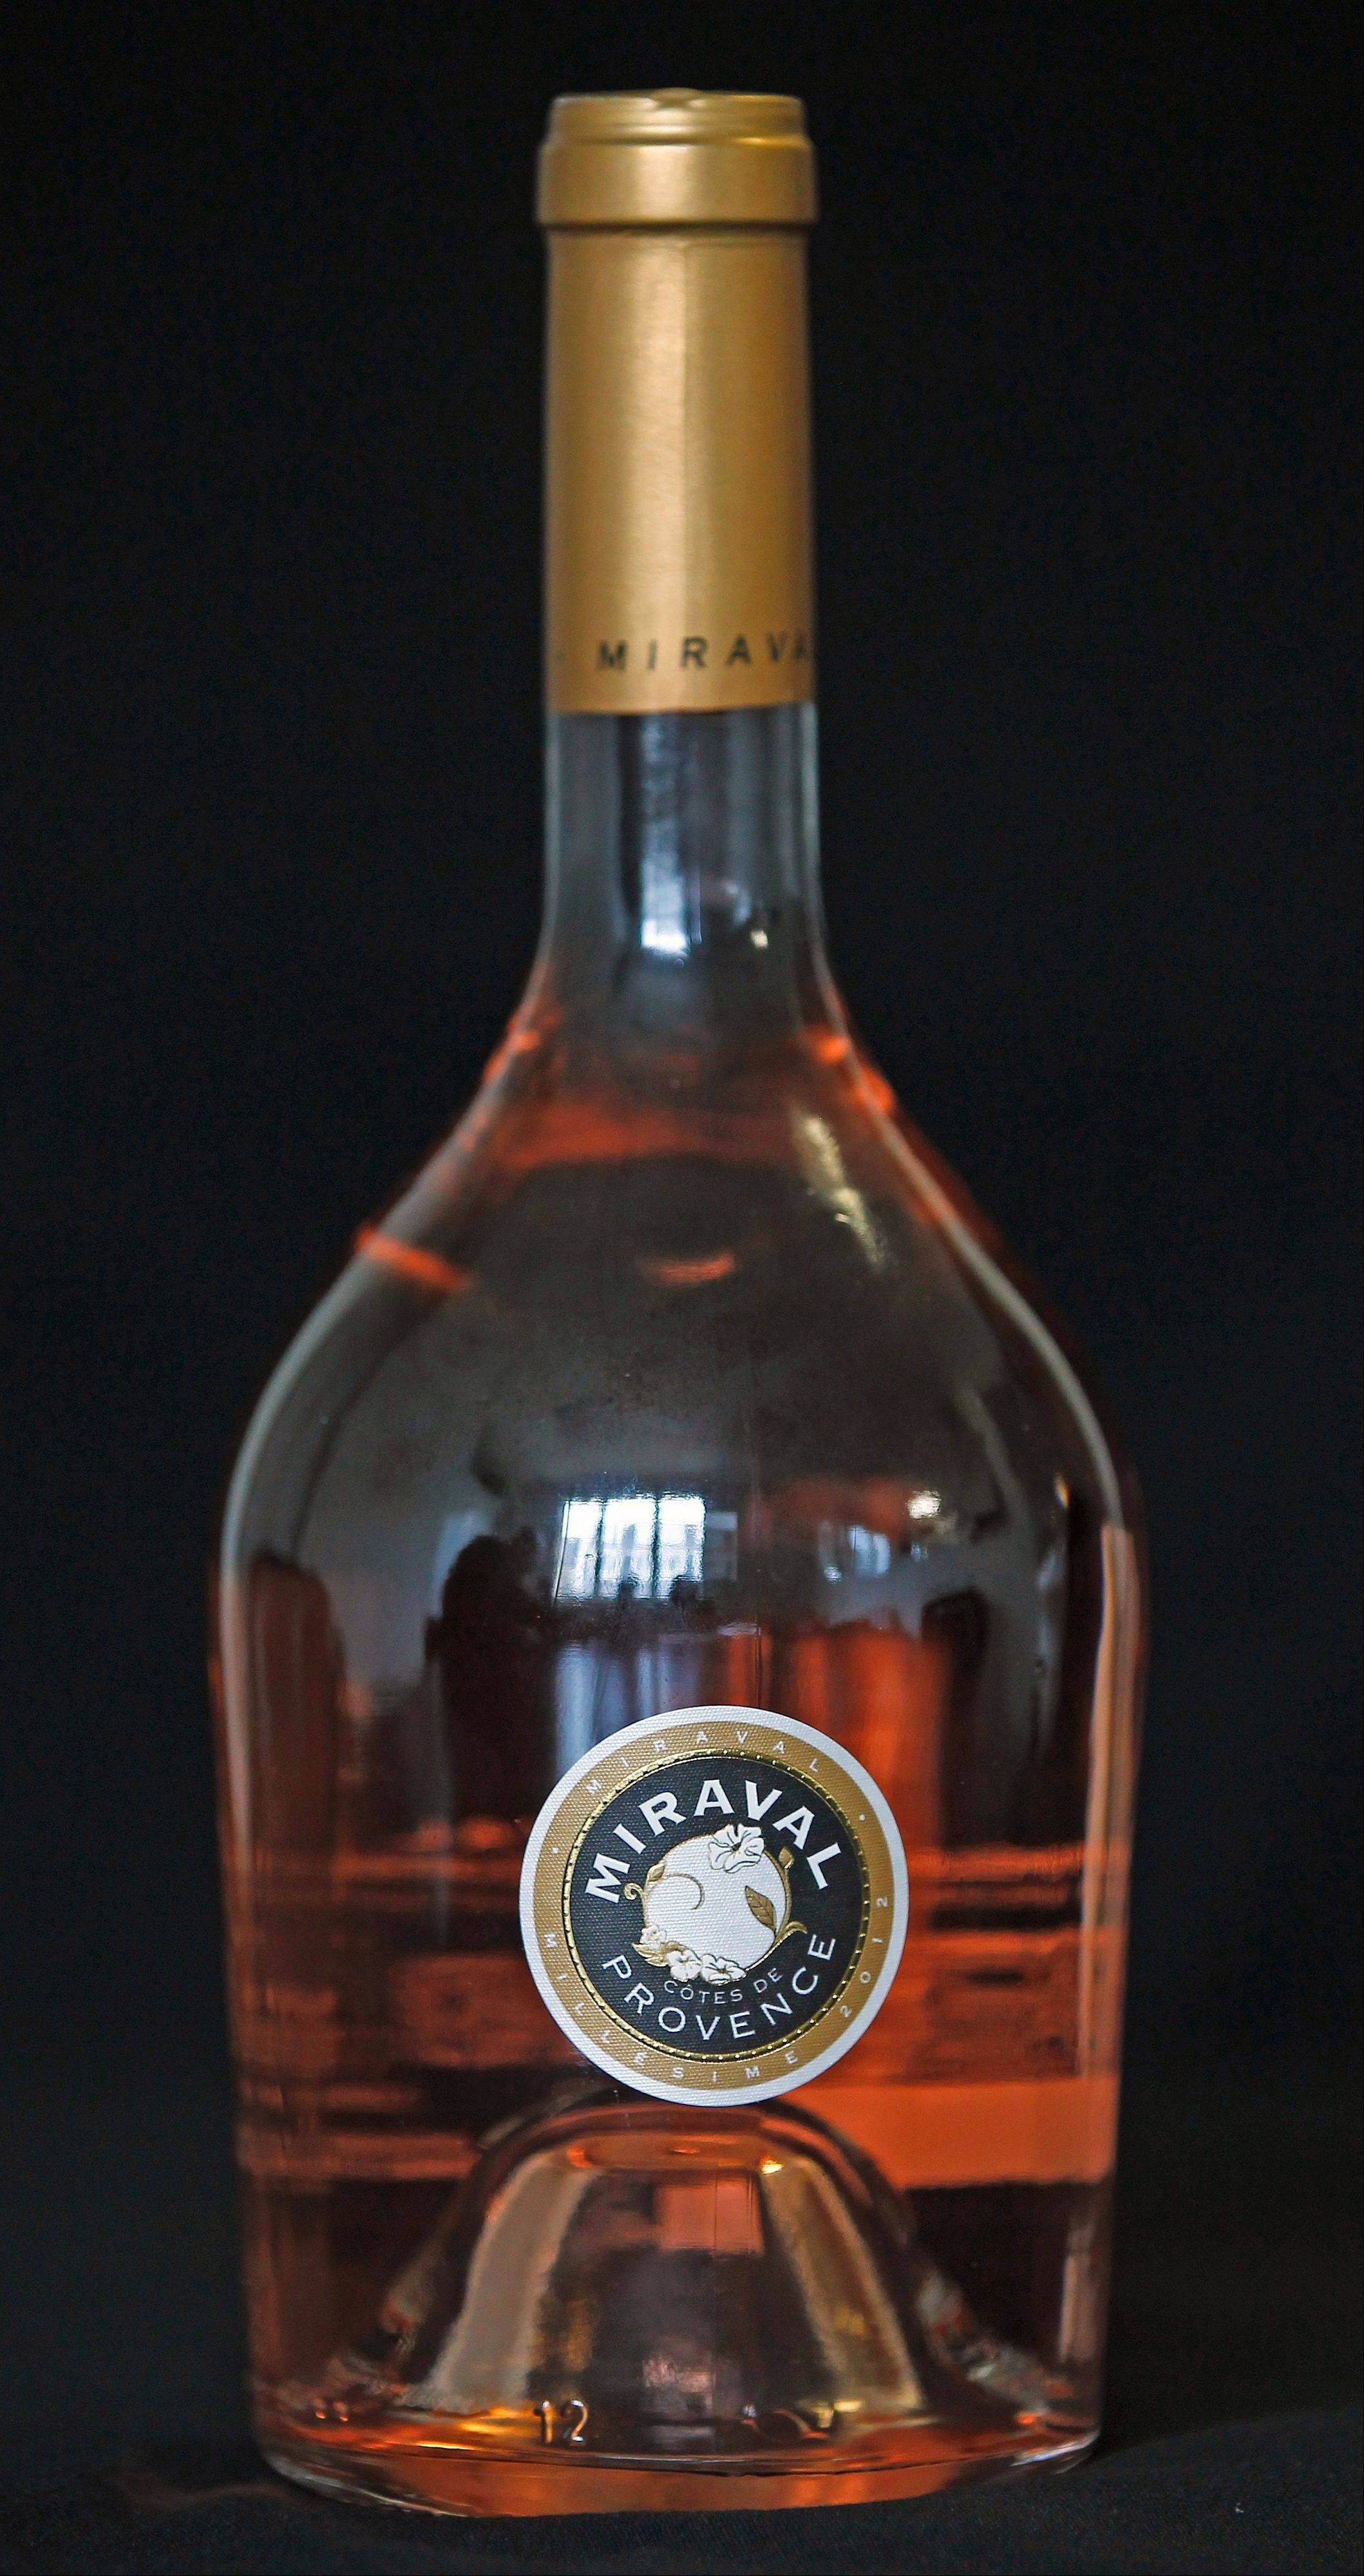 @Cation credit:Associated Press File Photo Angelina Jolie and Brad Pitt partnered with the Perrin French winemaking family to come up with Miraval. Grapes for the wine are grown on the celebrity couple's land in the south of France.